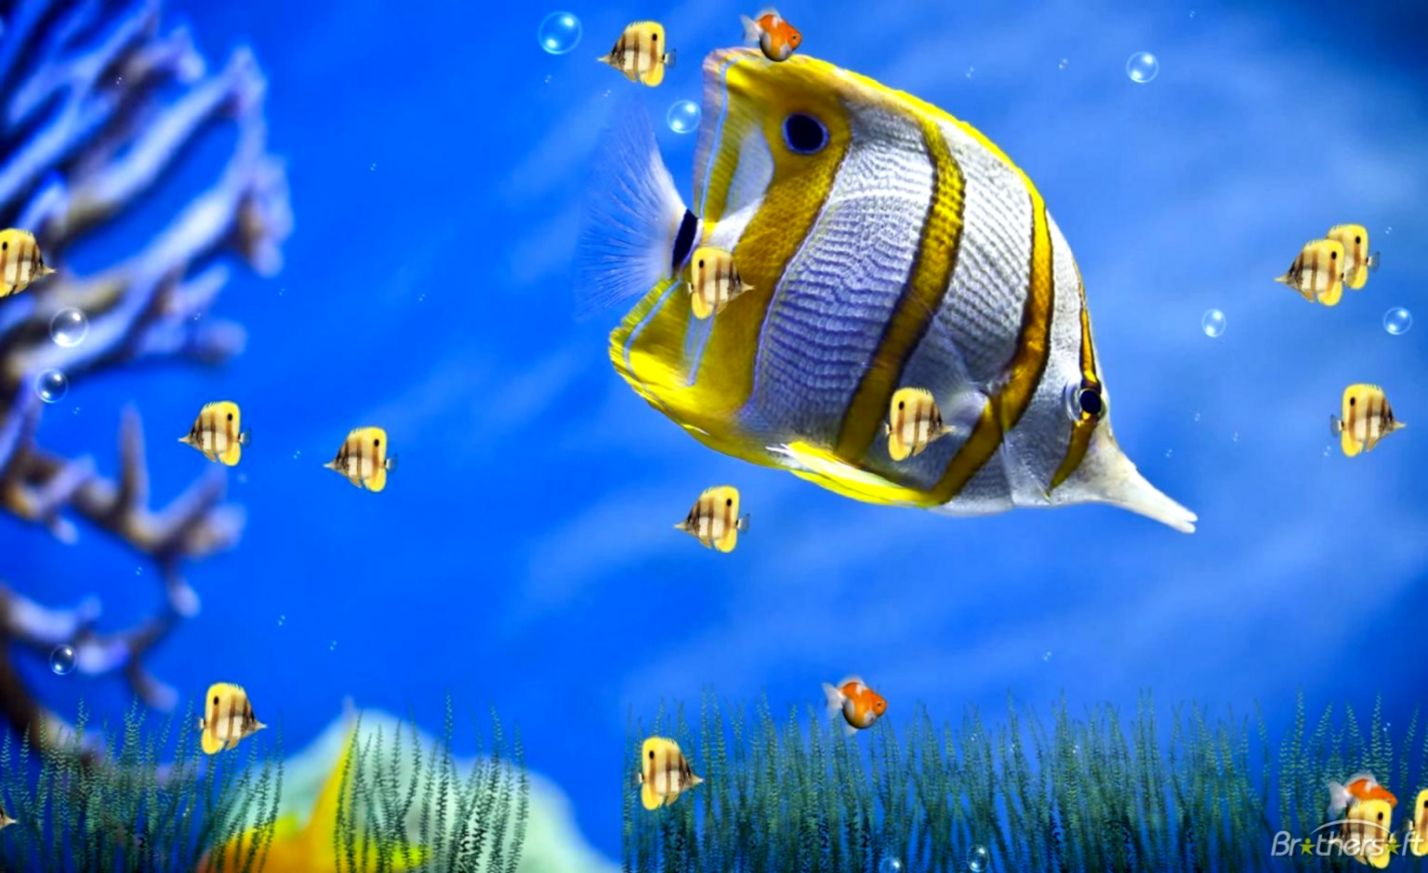 Download Free Marine Life Aquarium Animated Wallpaper Marine Life